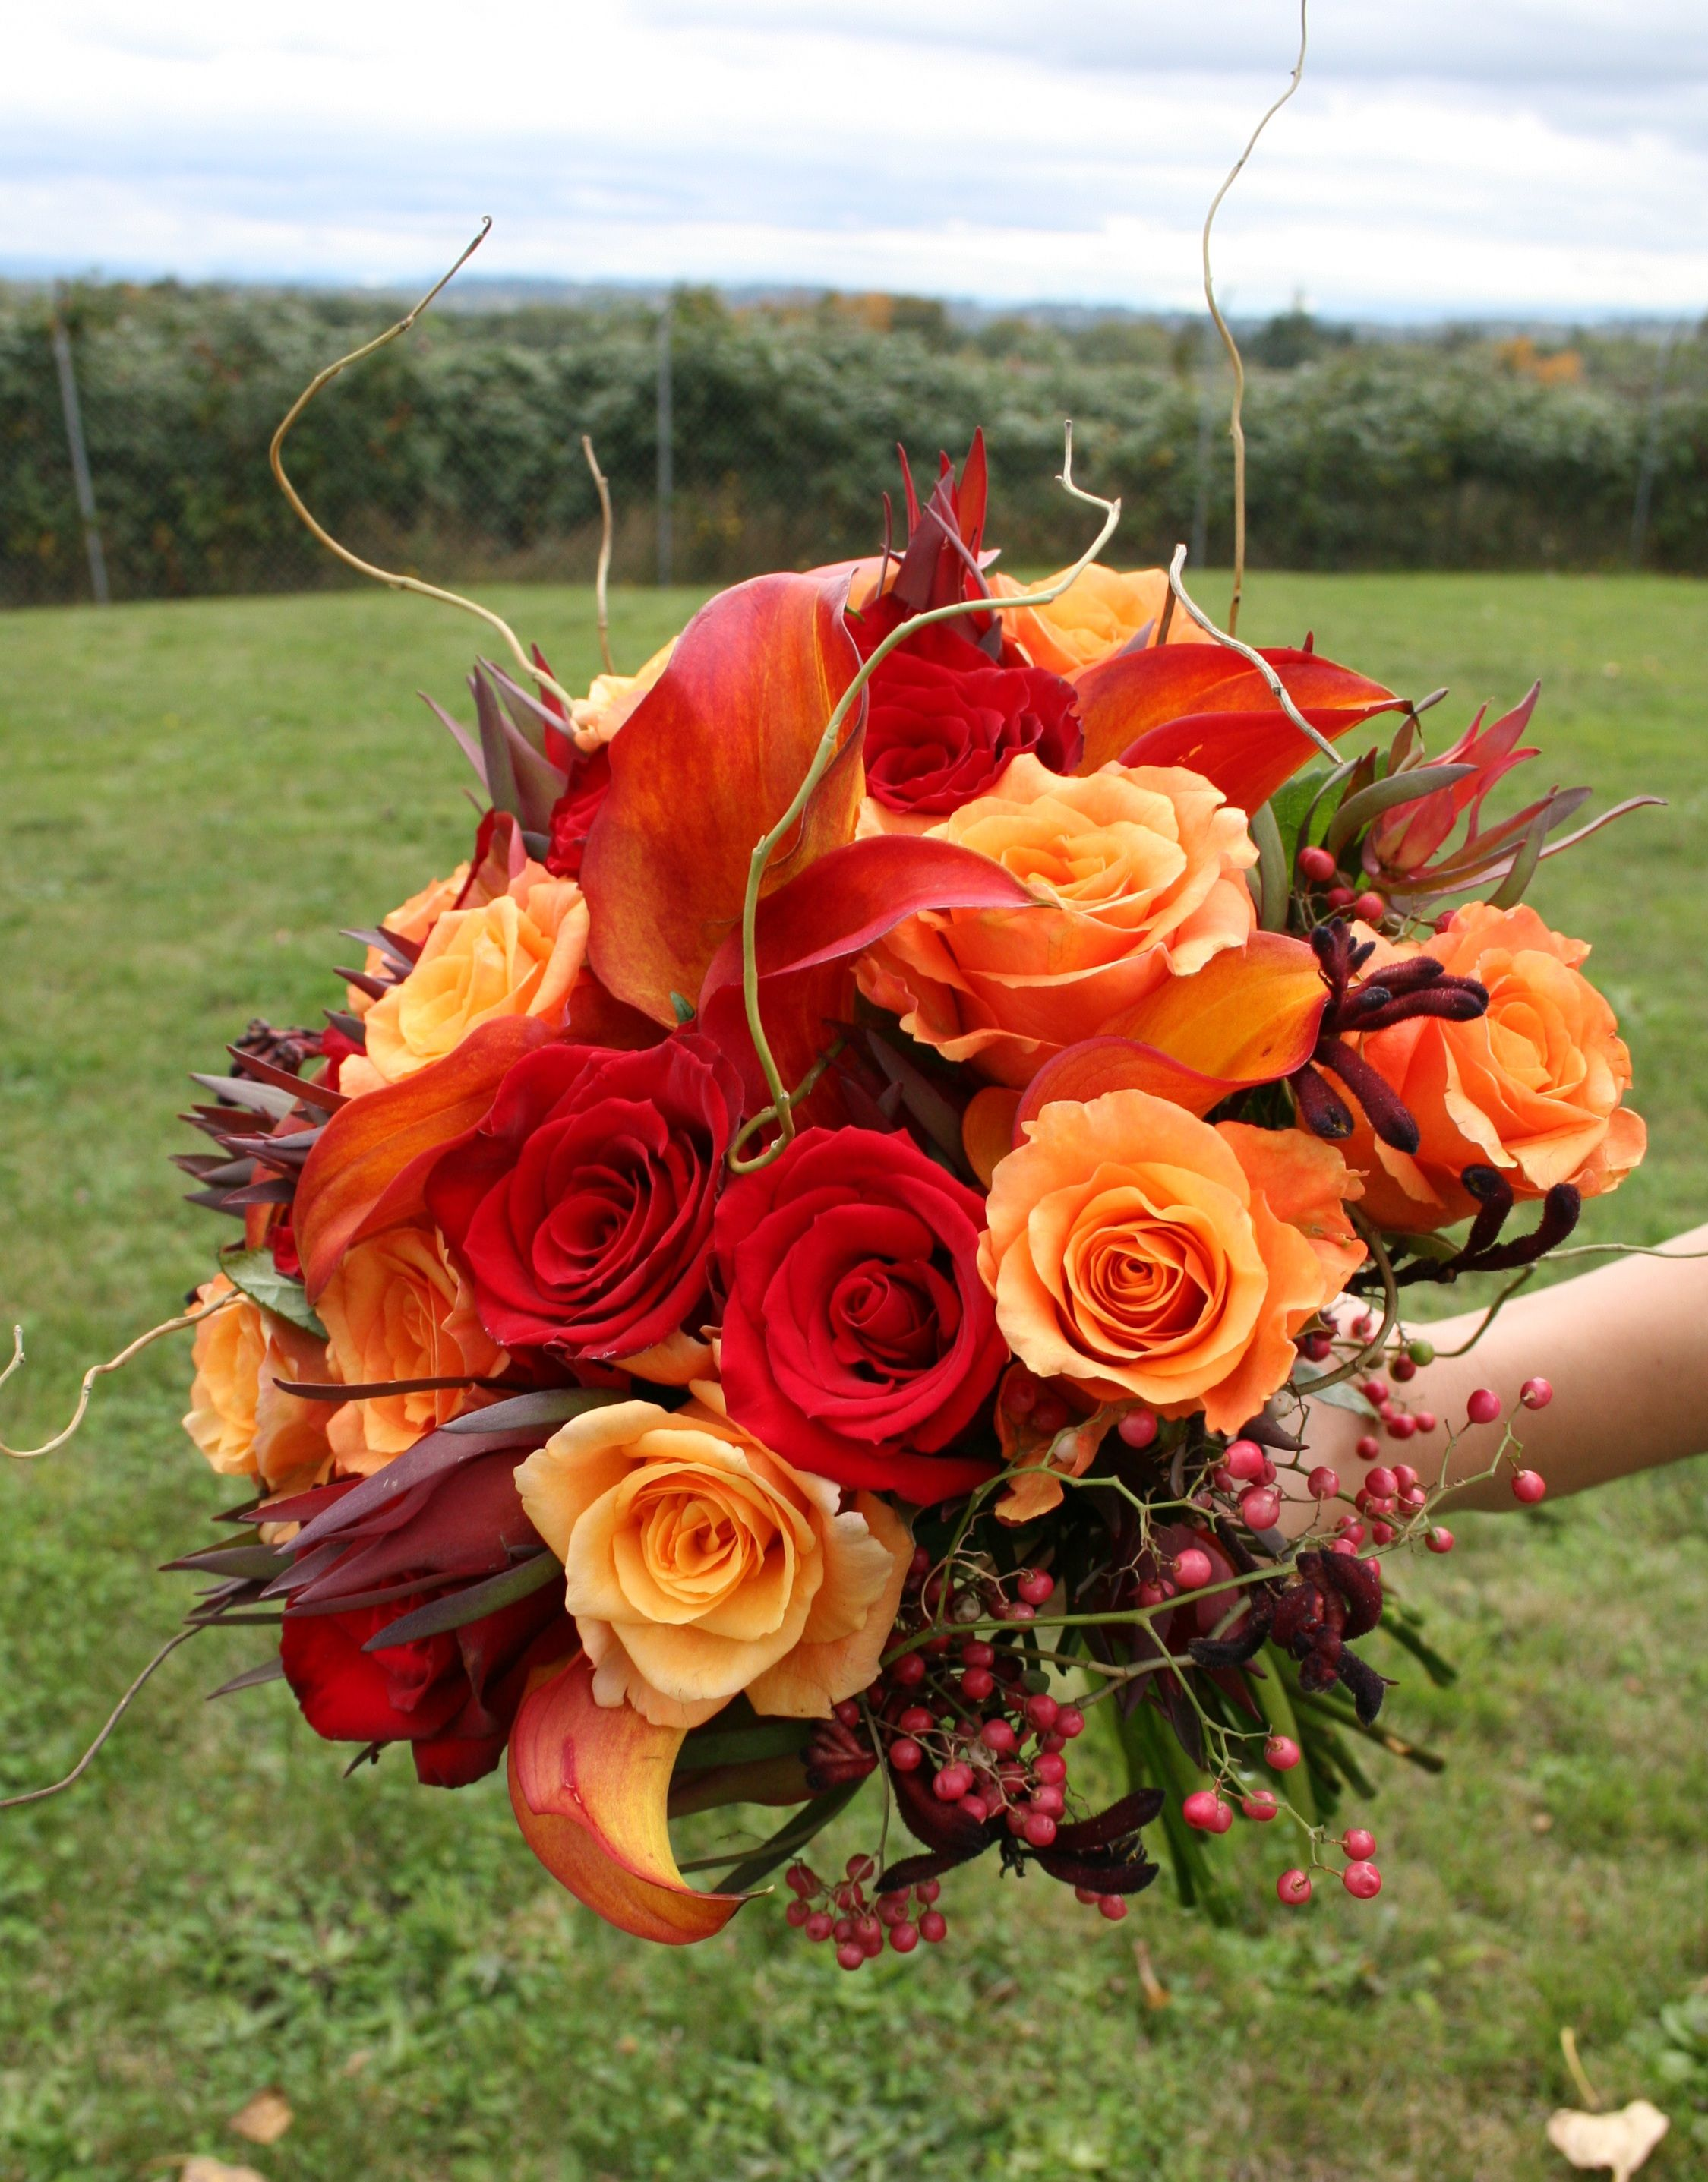 Fall textures stadium flowers wedding pinterest fall fall texture wedding flower bouquet bridal bouquet wedding flowers add pic source on comment and we will update it can create this beautiful wedding dhlflorist Choice Image